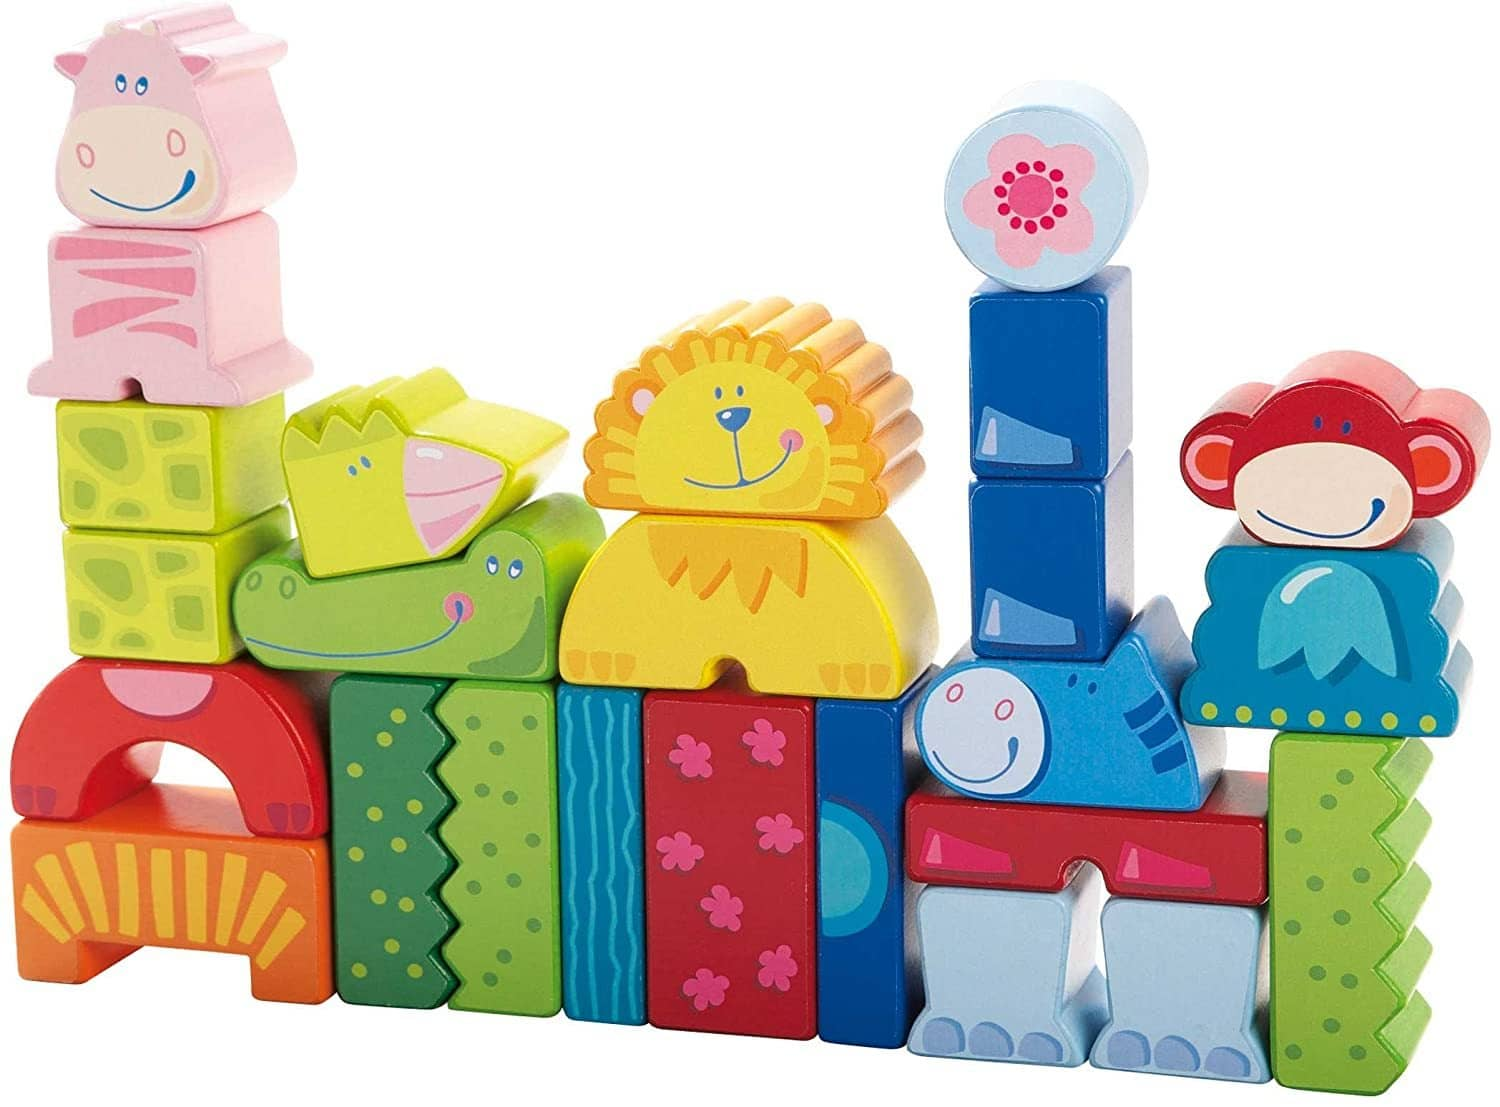 Eeny, Meeny, Miny Zoo! 25 Piece Mix & Match Animal Blocks (Made In Germany)-Kidding Around NYC